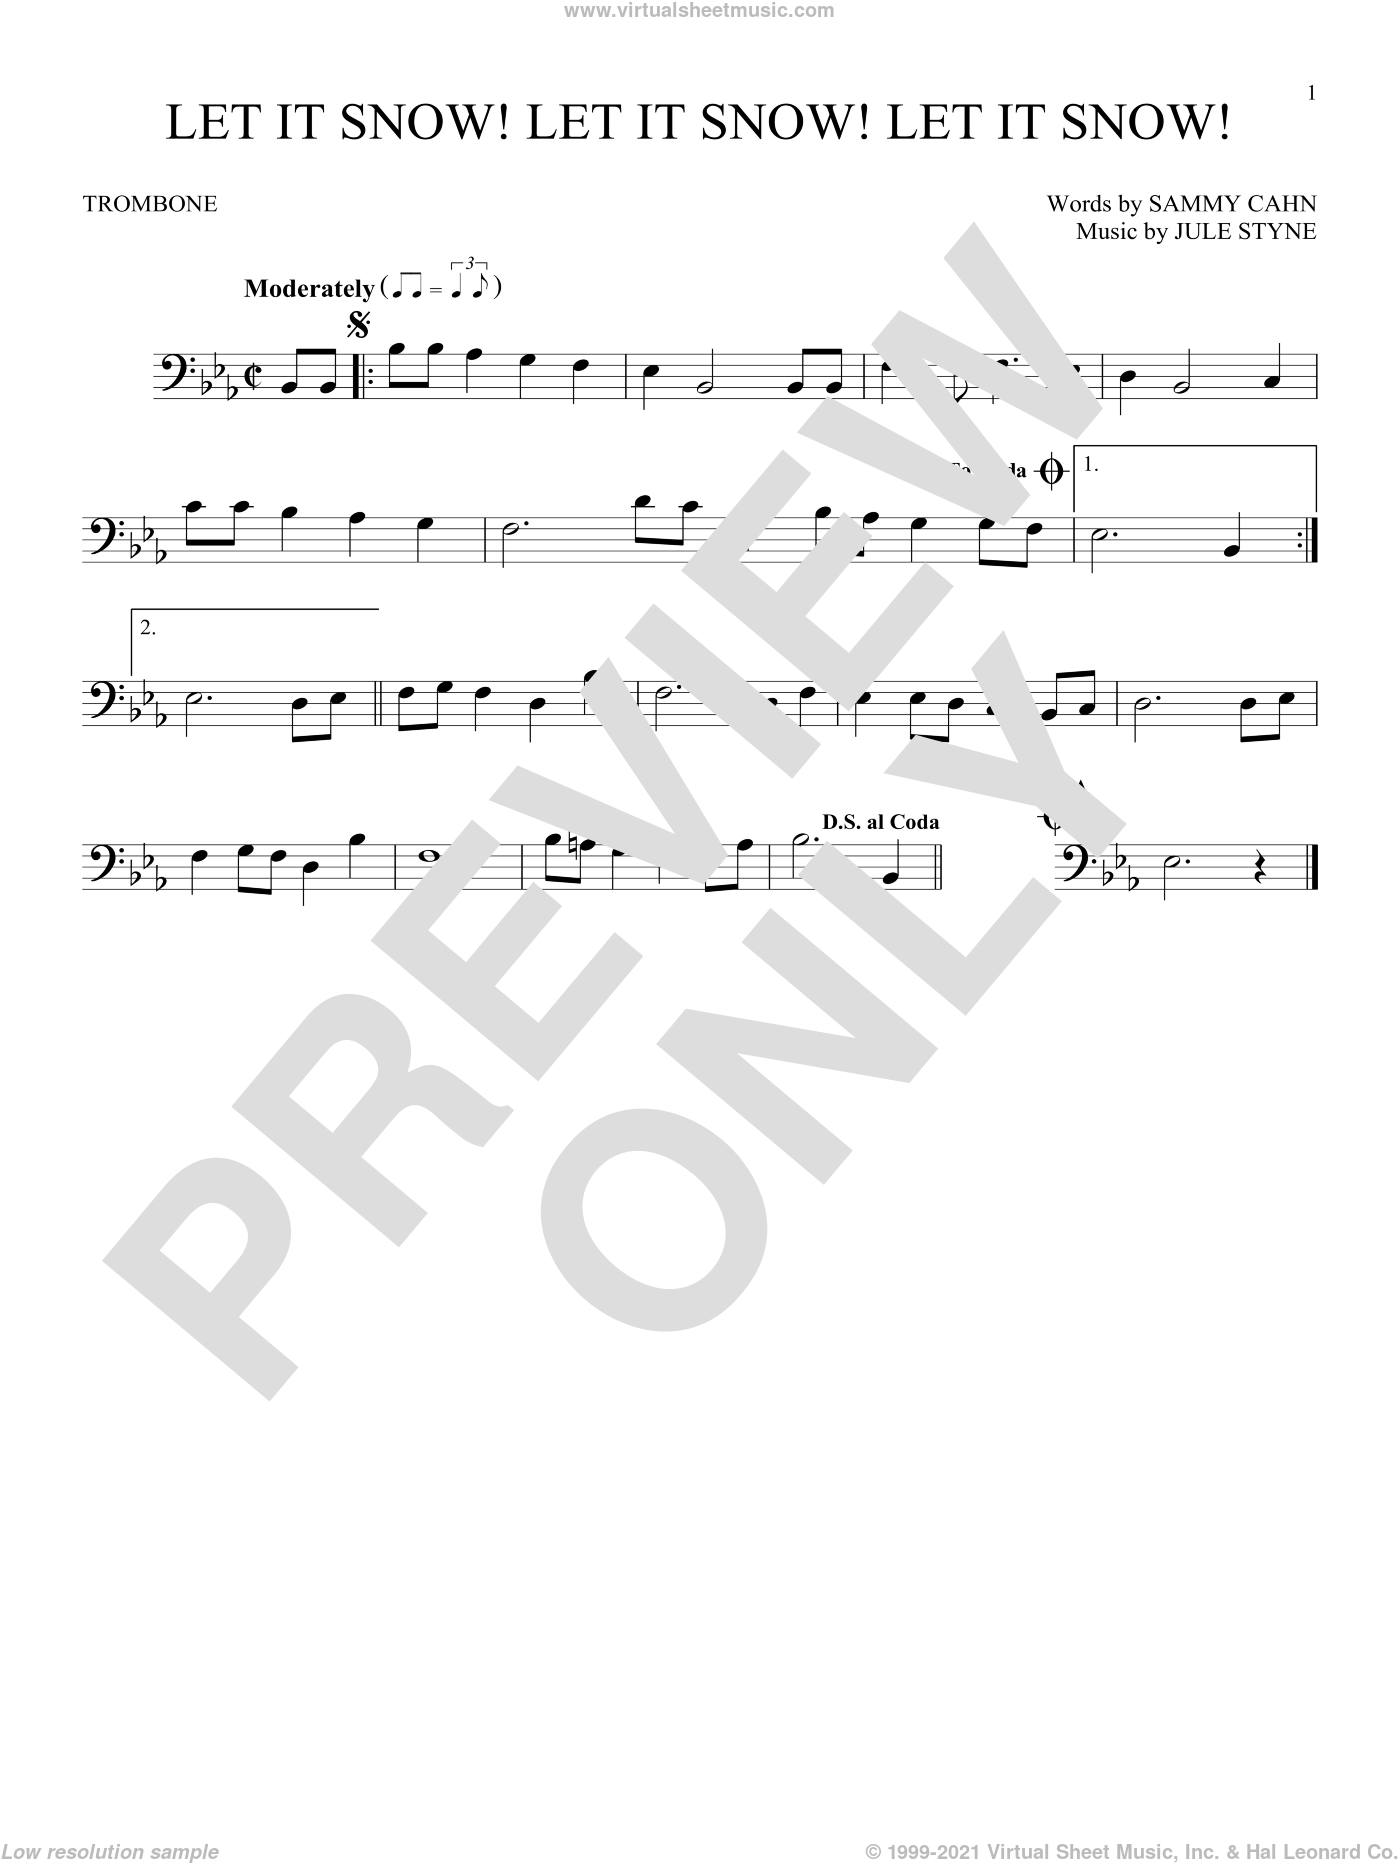 Let It Snow! Let It Snow! Let It Snow! sheet music for trombone solo by Sammy Cahn